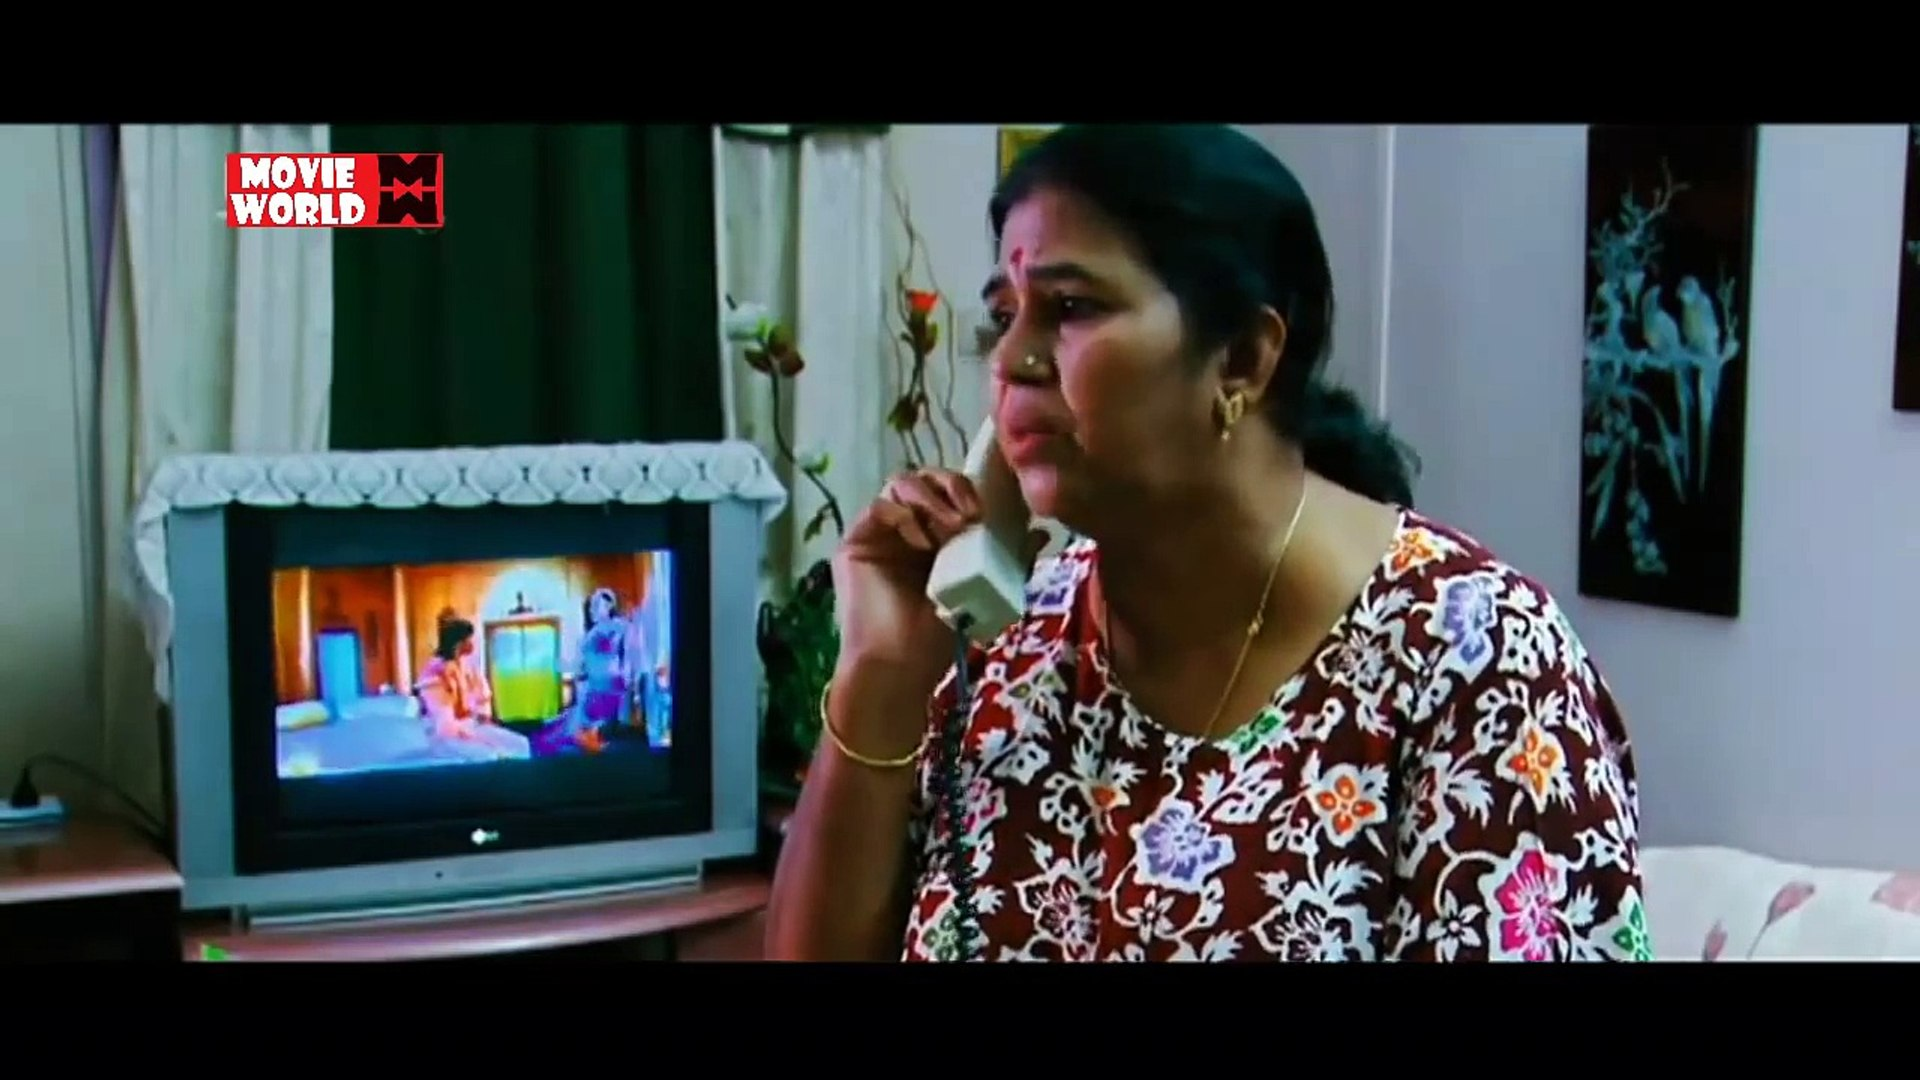 Tamil Movies 2017 Full Movie New Releases   Adutha Kattam   Tamil Full Movie   Tamil New Movie 2017